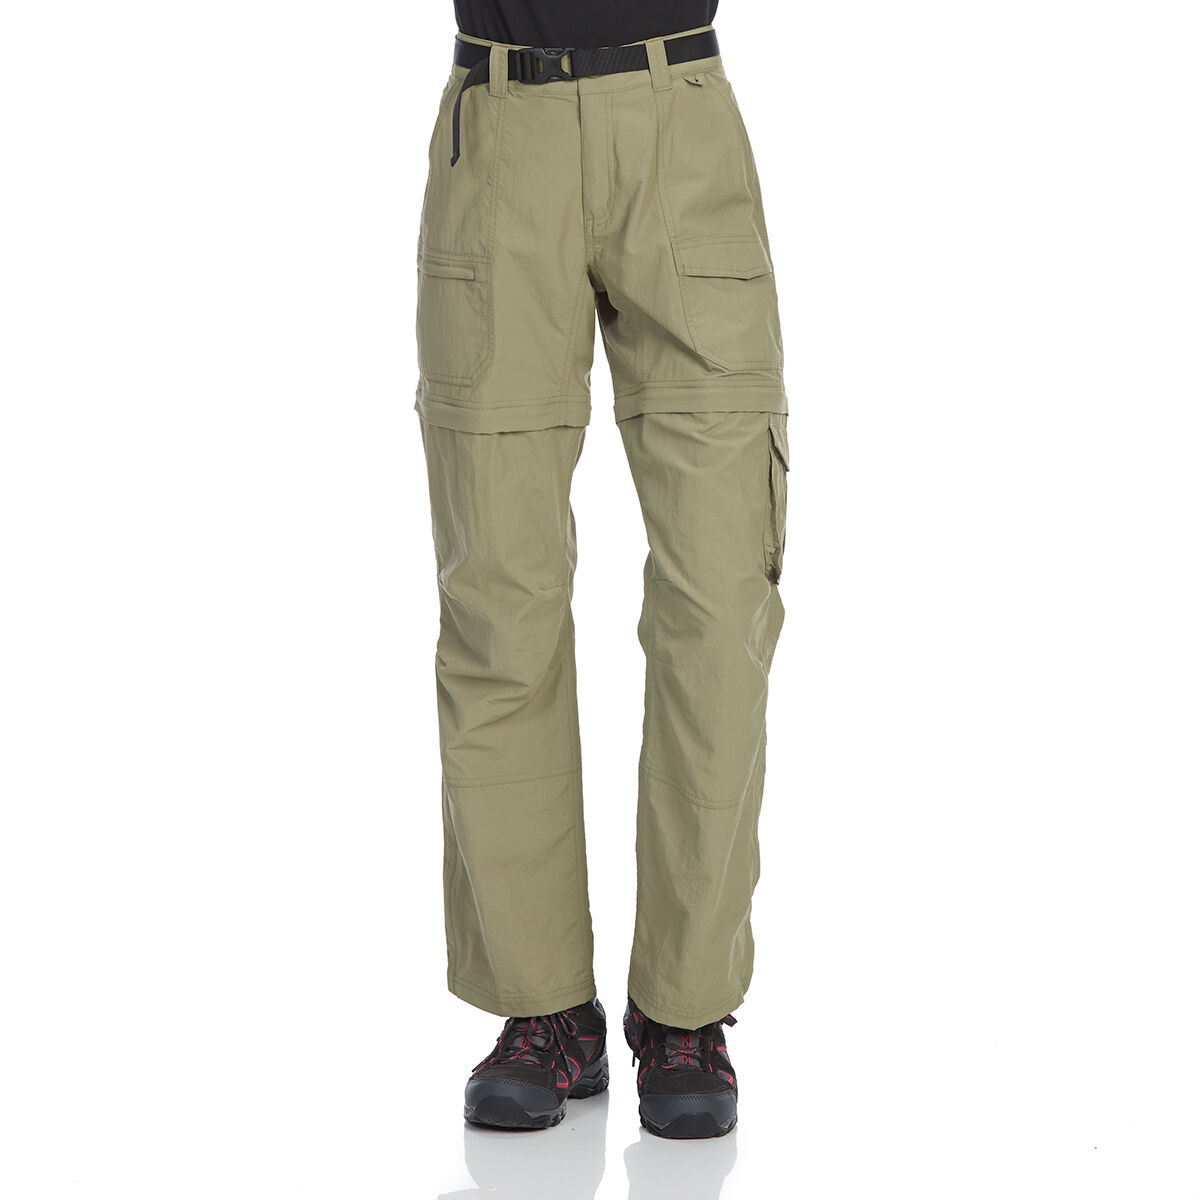 Ems Women's Camp Cargo Zip-Off Pants - Brown, 4/S